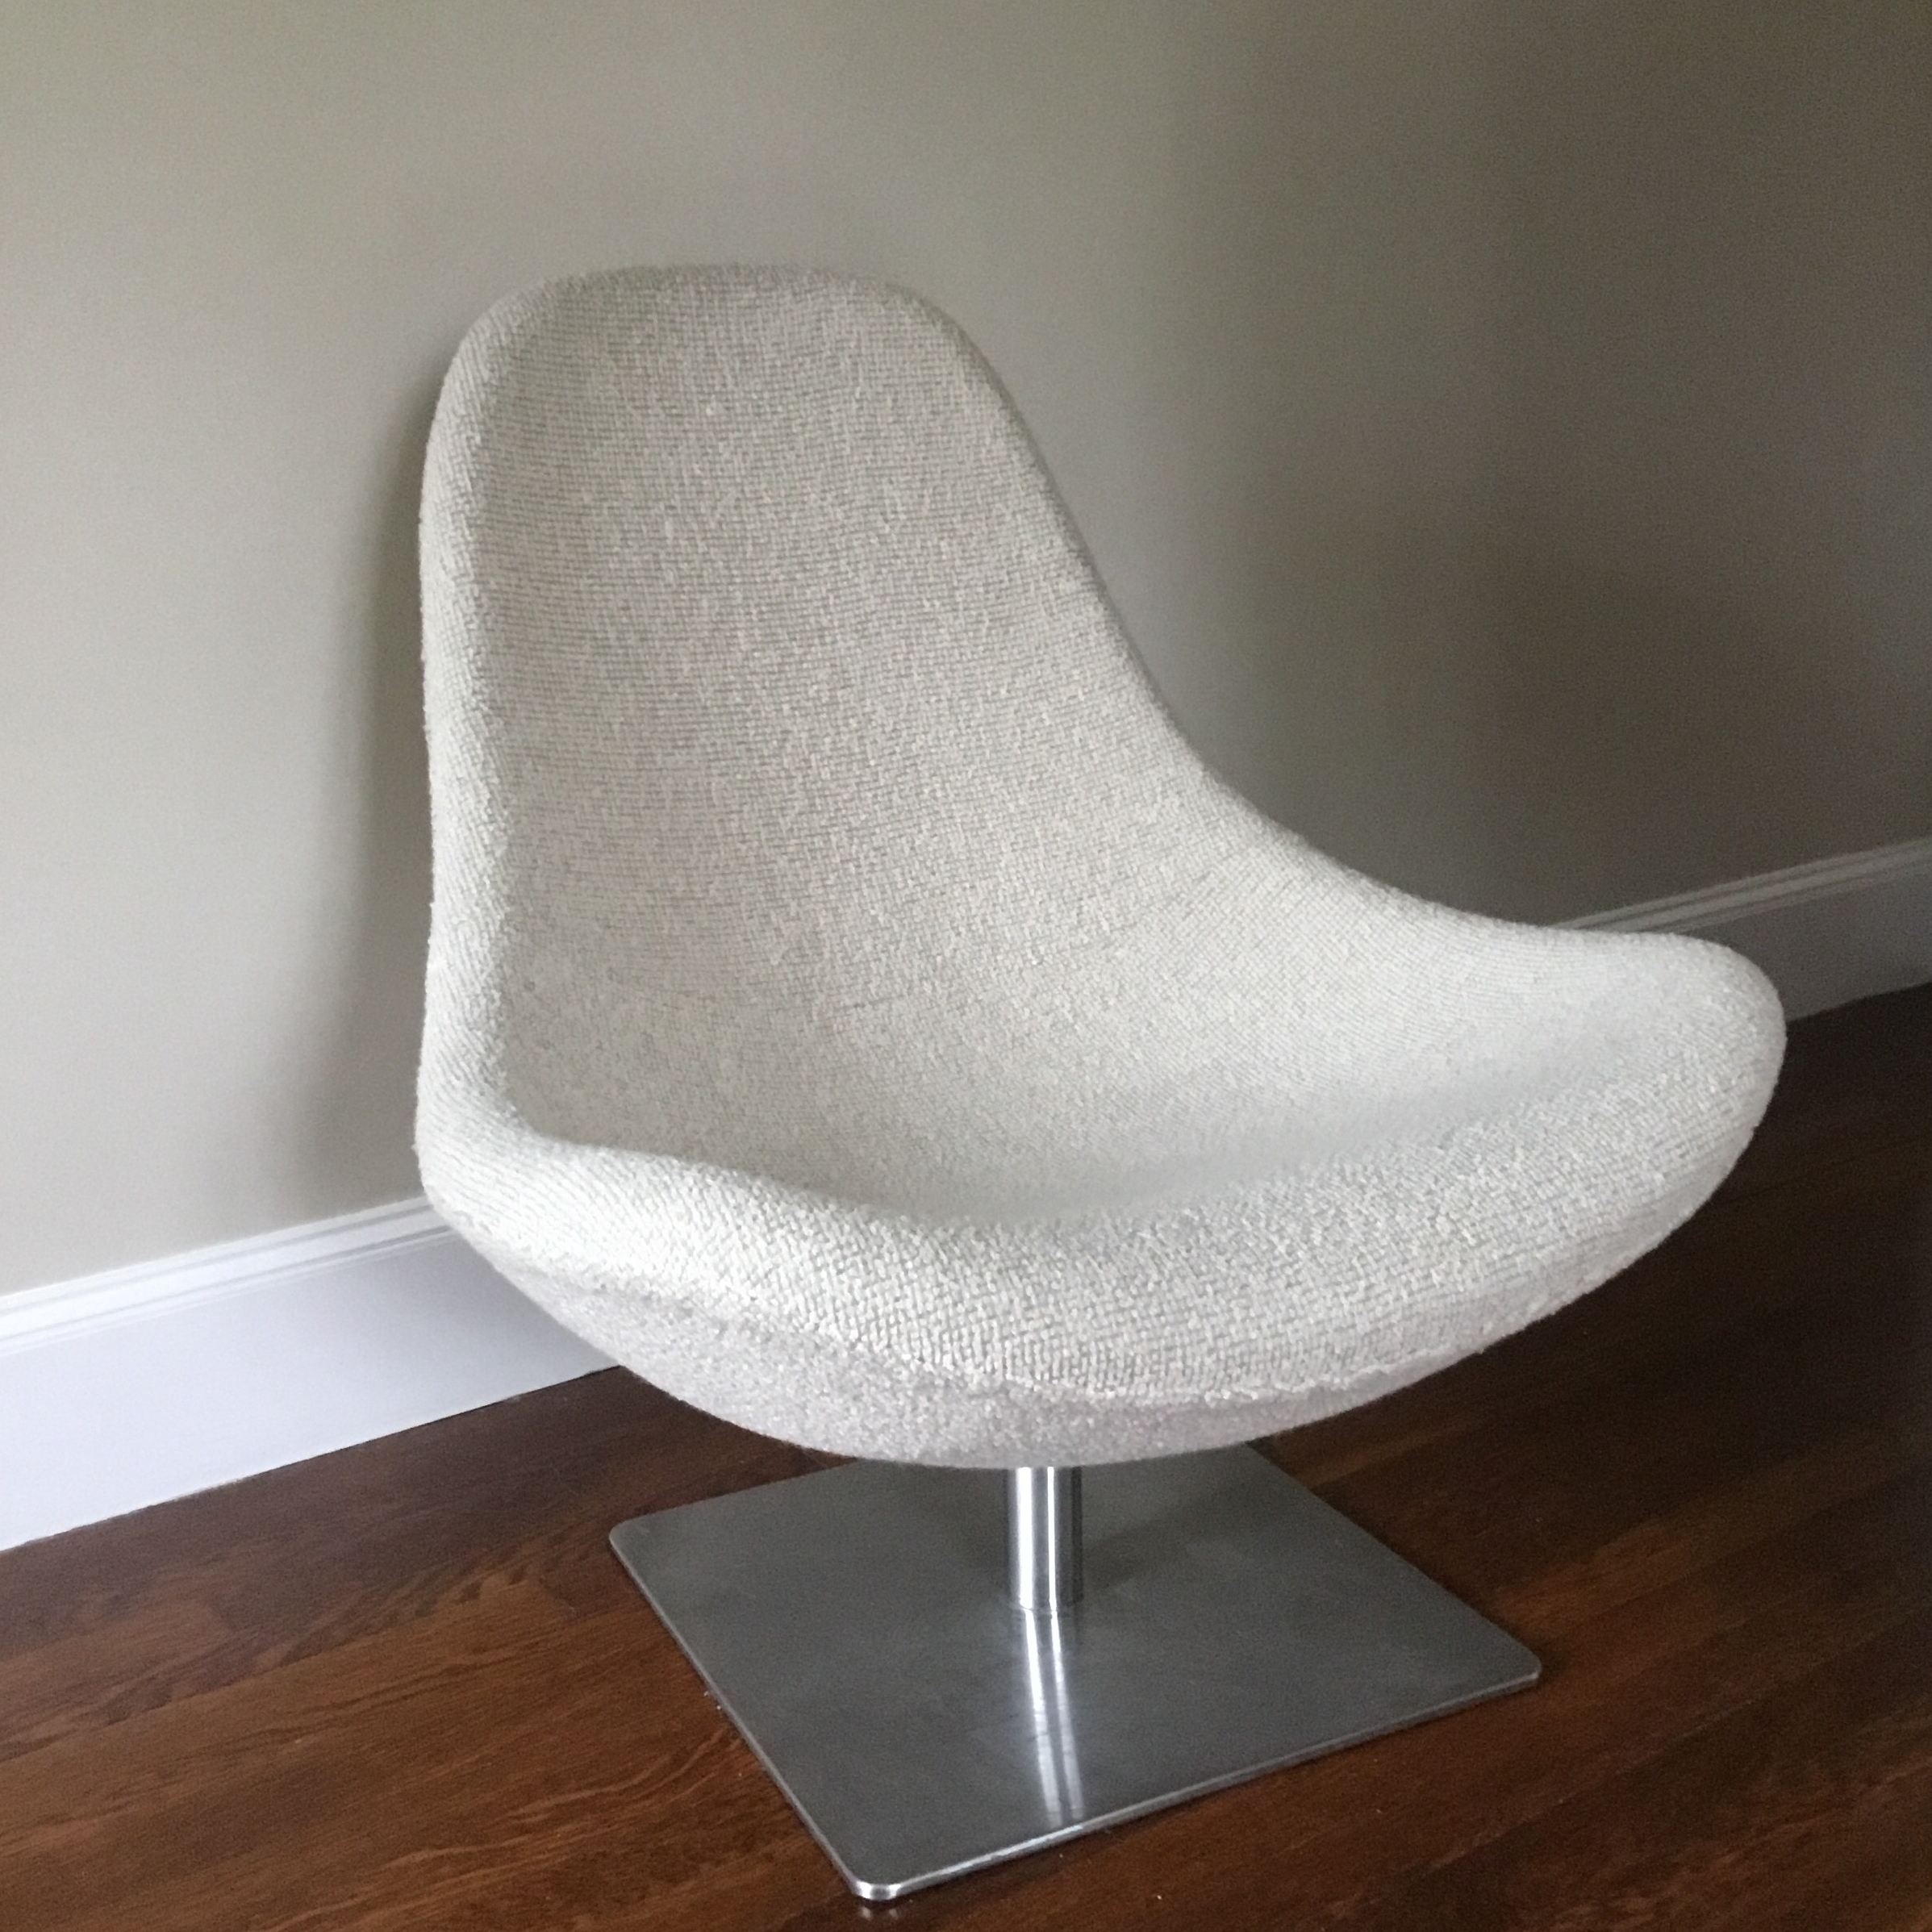 A cozy modern upholstered chair with a stainless steel swivel square base.  This new but. Anglo-Indian Mid Century Modern Swivel Lounge